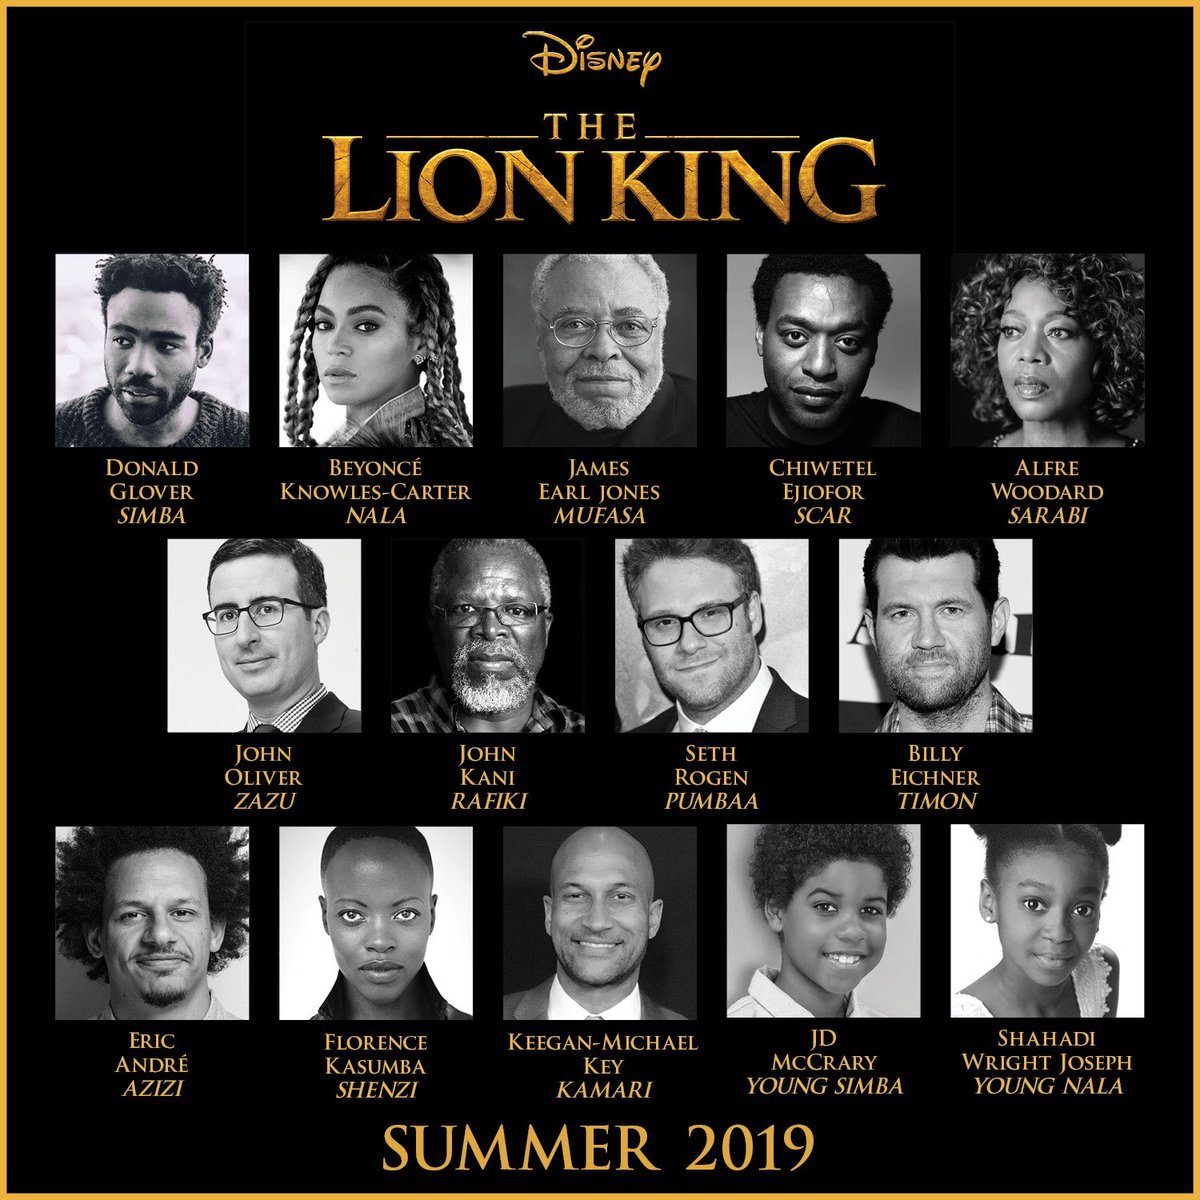 Disney Announces Full Cast For The Lion King Remake, Beyoncé Confirmed For Nala